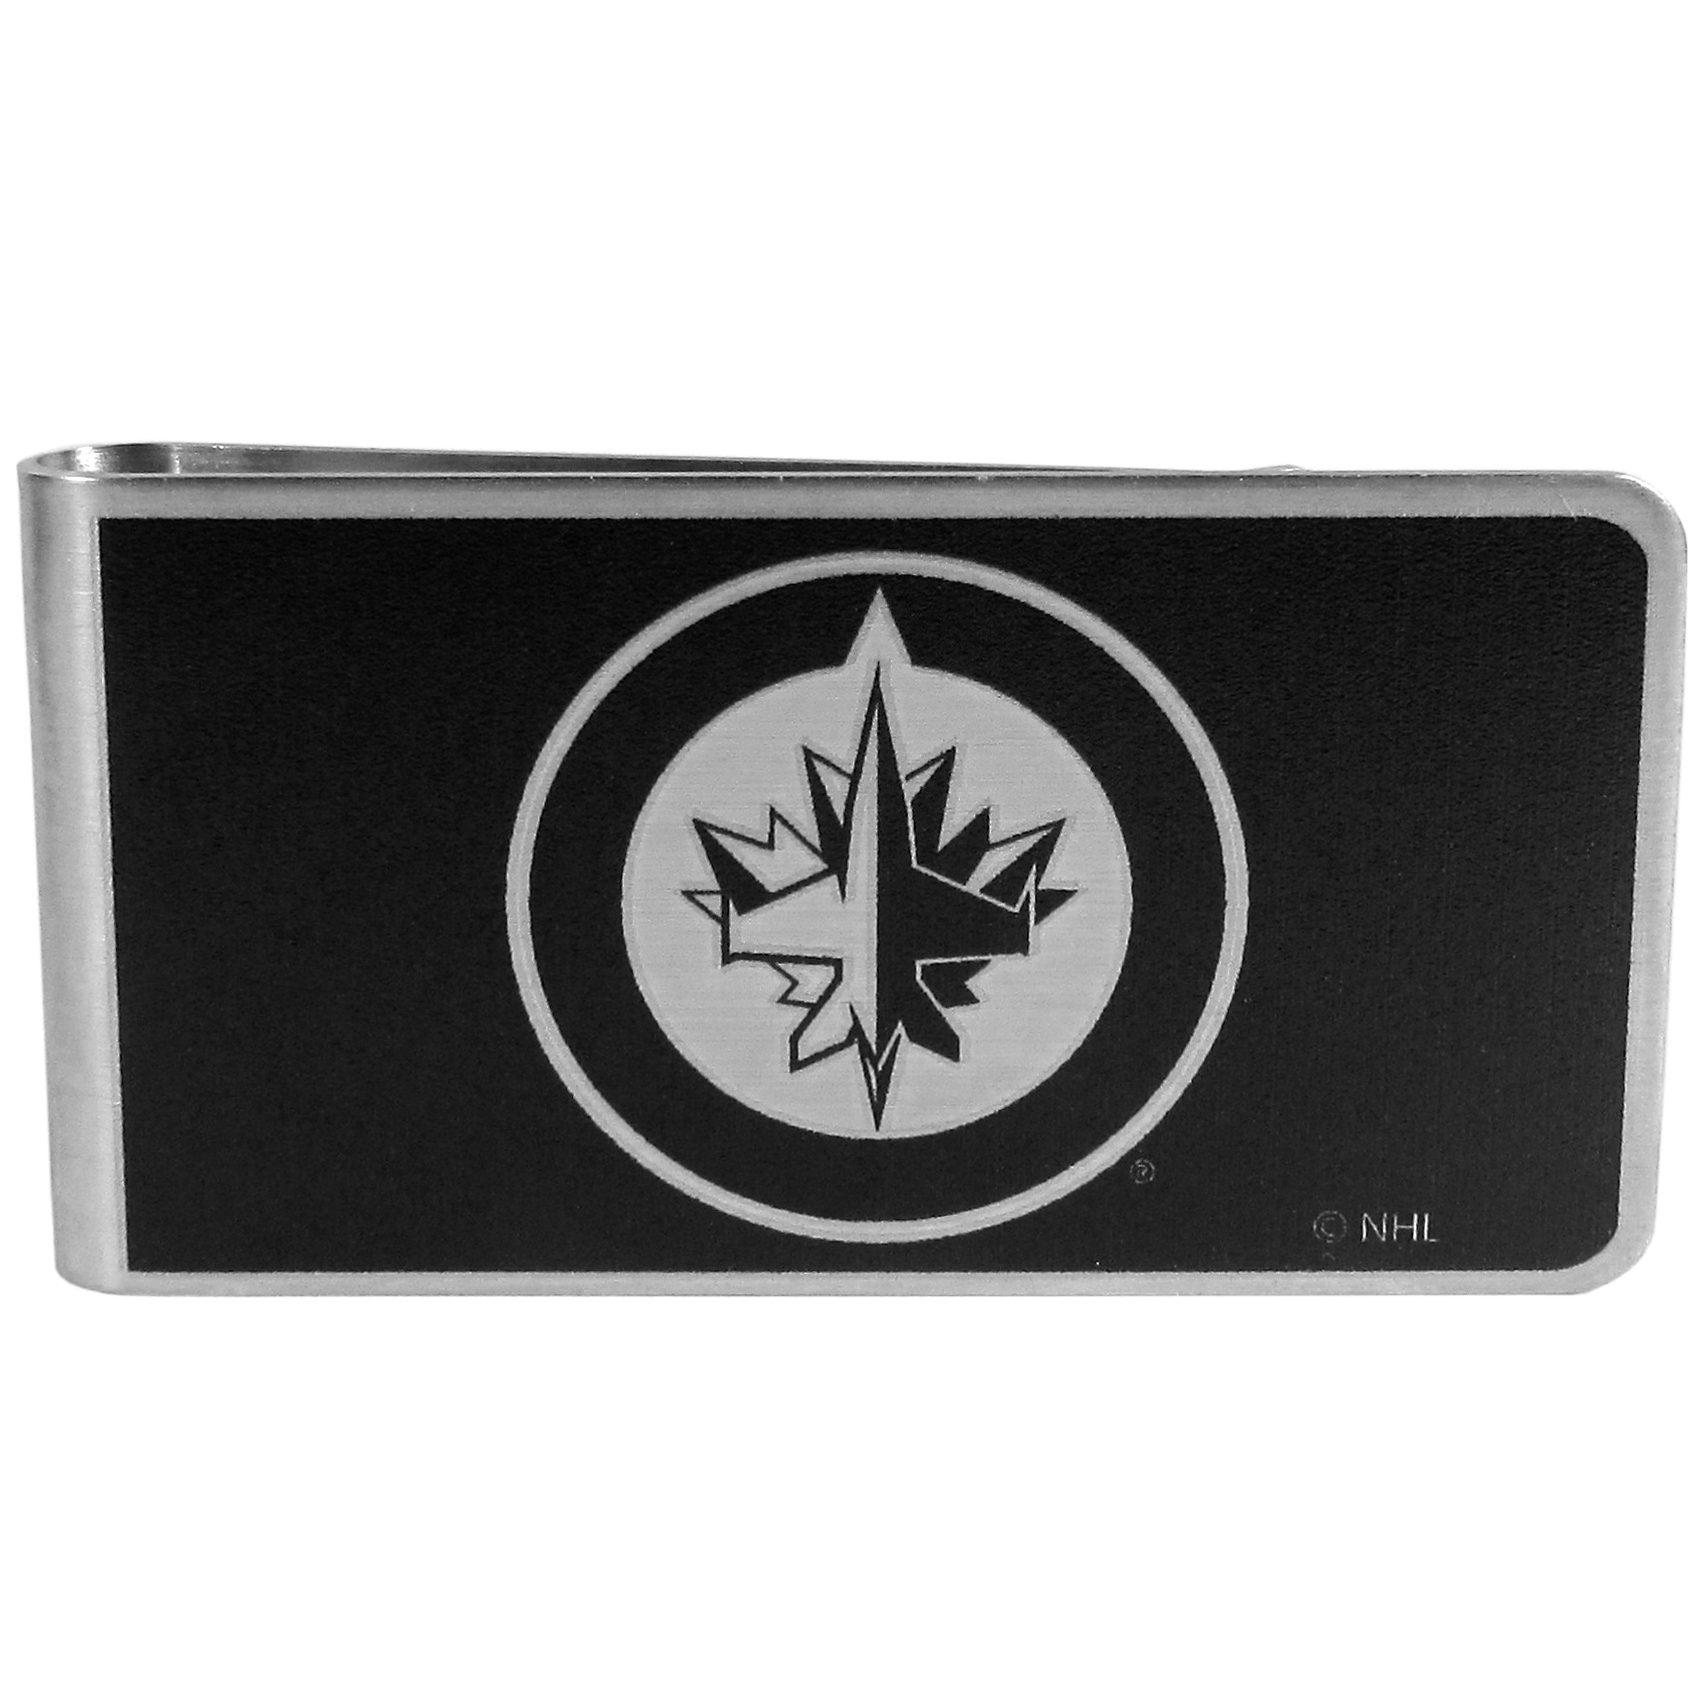 Winnipeg Jets™ Black and Steel Money Clip - Our monochromatic steel money clips have a classic style and superior quality. The strong, steel clip has a black overlay of the Winnipeg Jets™ logo over the brushed metal finish creating a stylish men's fashion accessory that would make any fan proud.